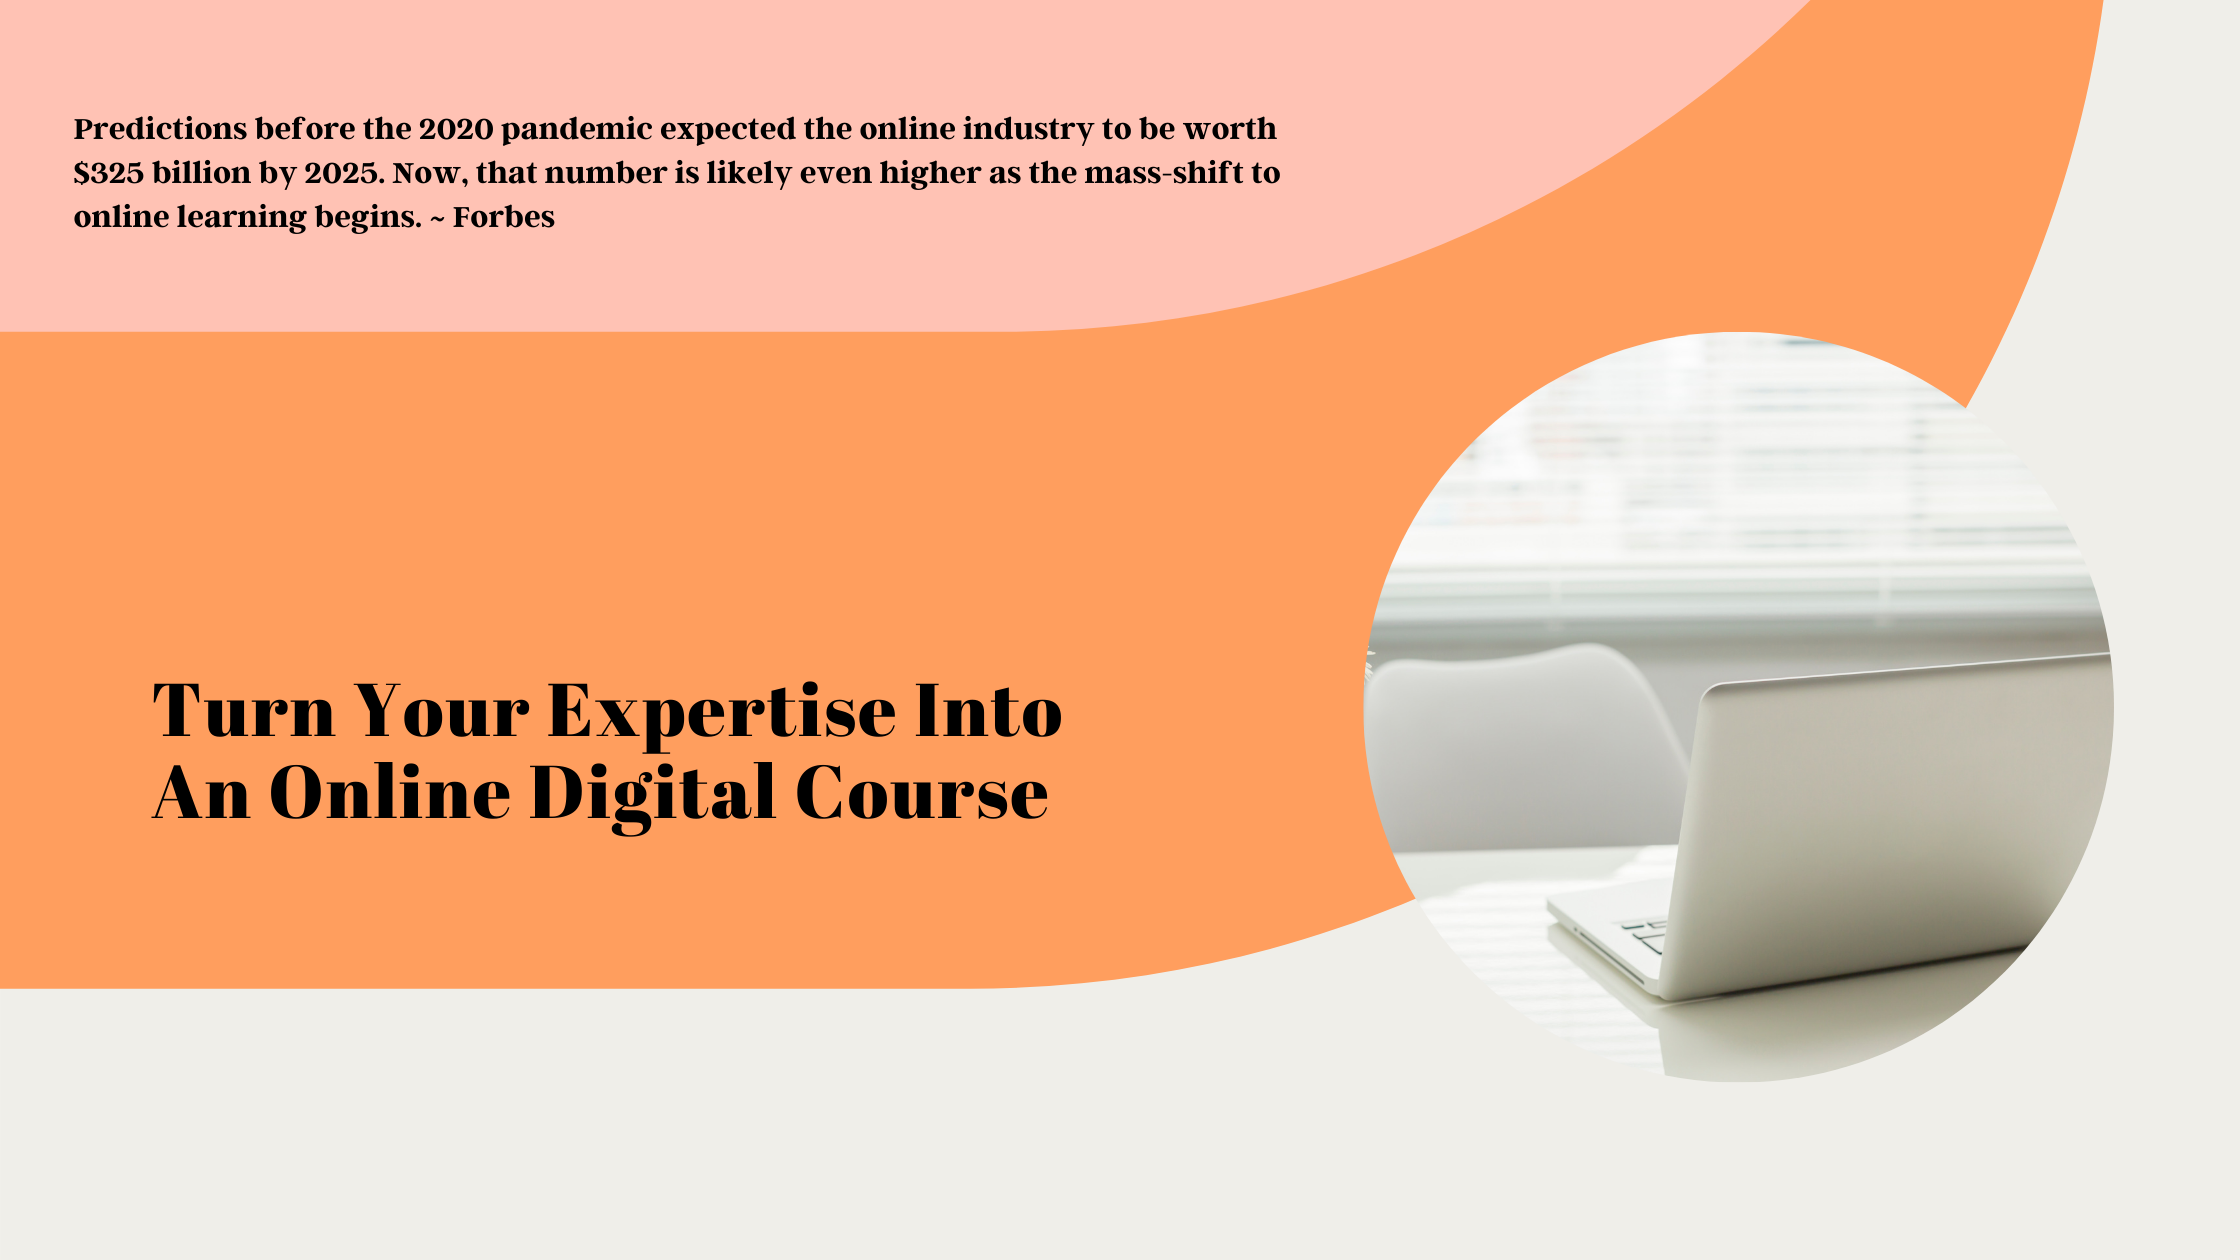 Turn your expertise into a digital course